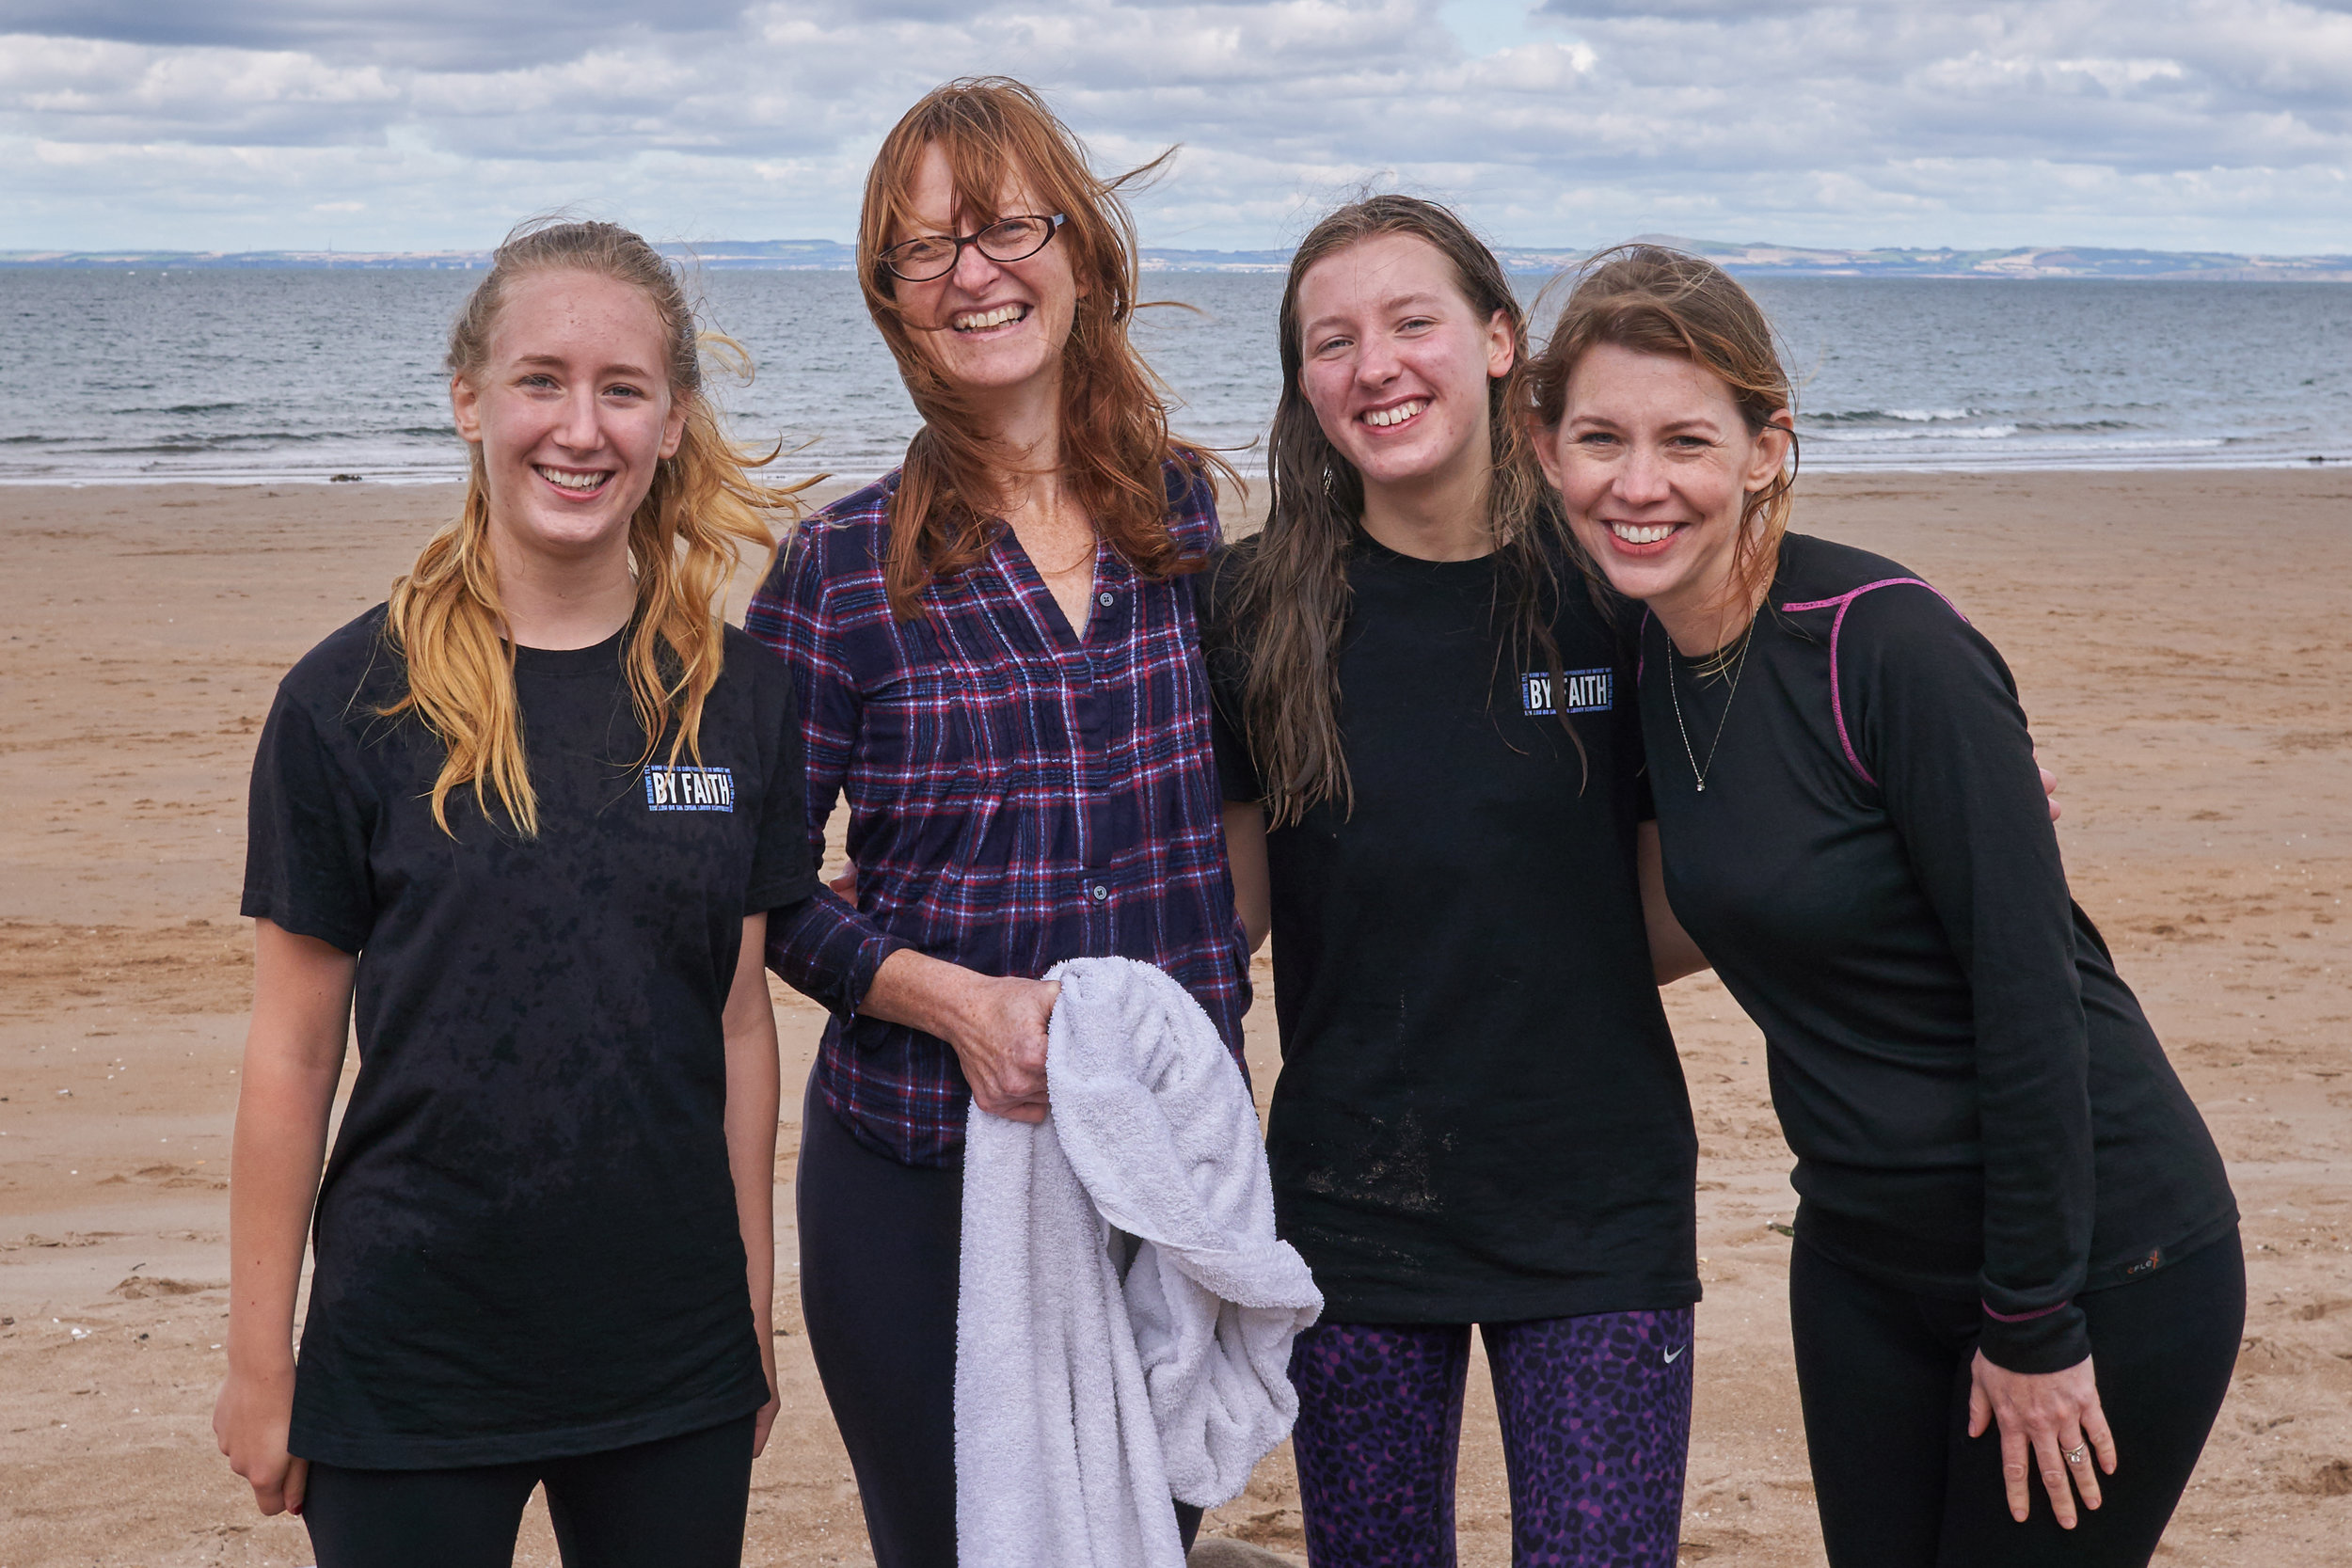 Last summer in Edinburgh, three generations of women baptized Megan Gardner (third from left) in the cold waters of the North Sea.